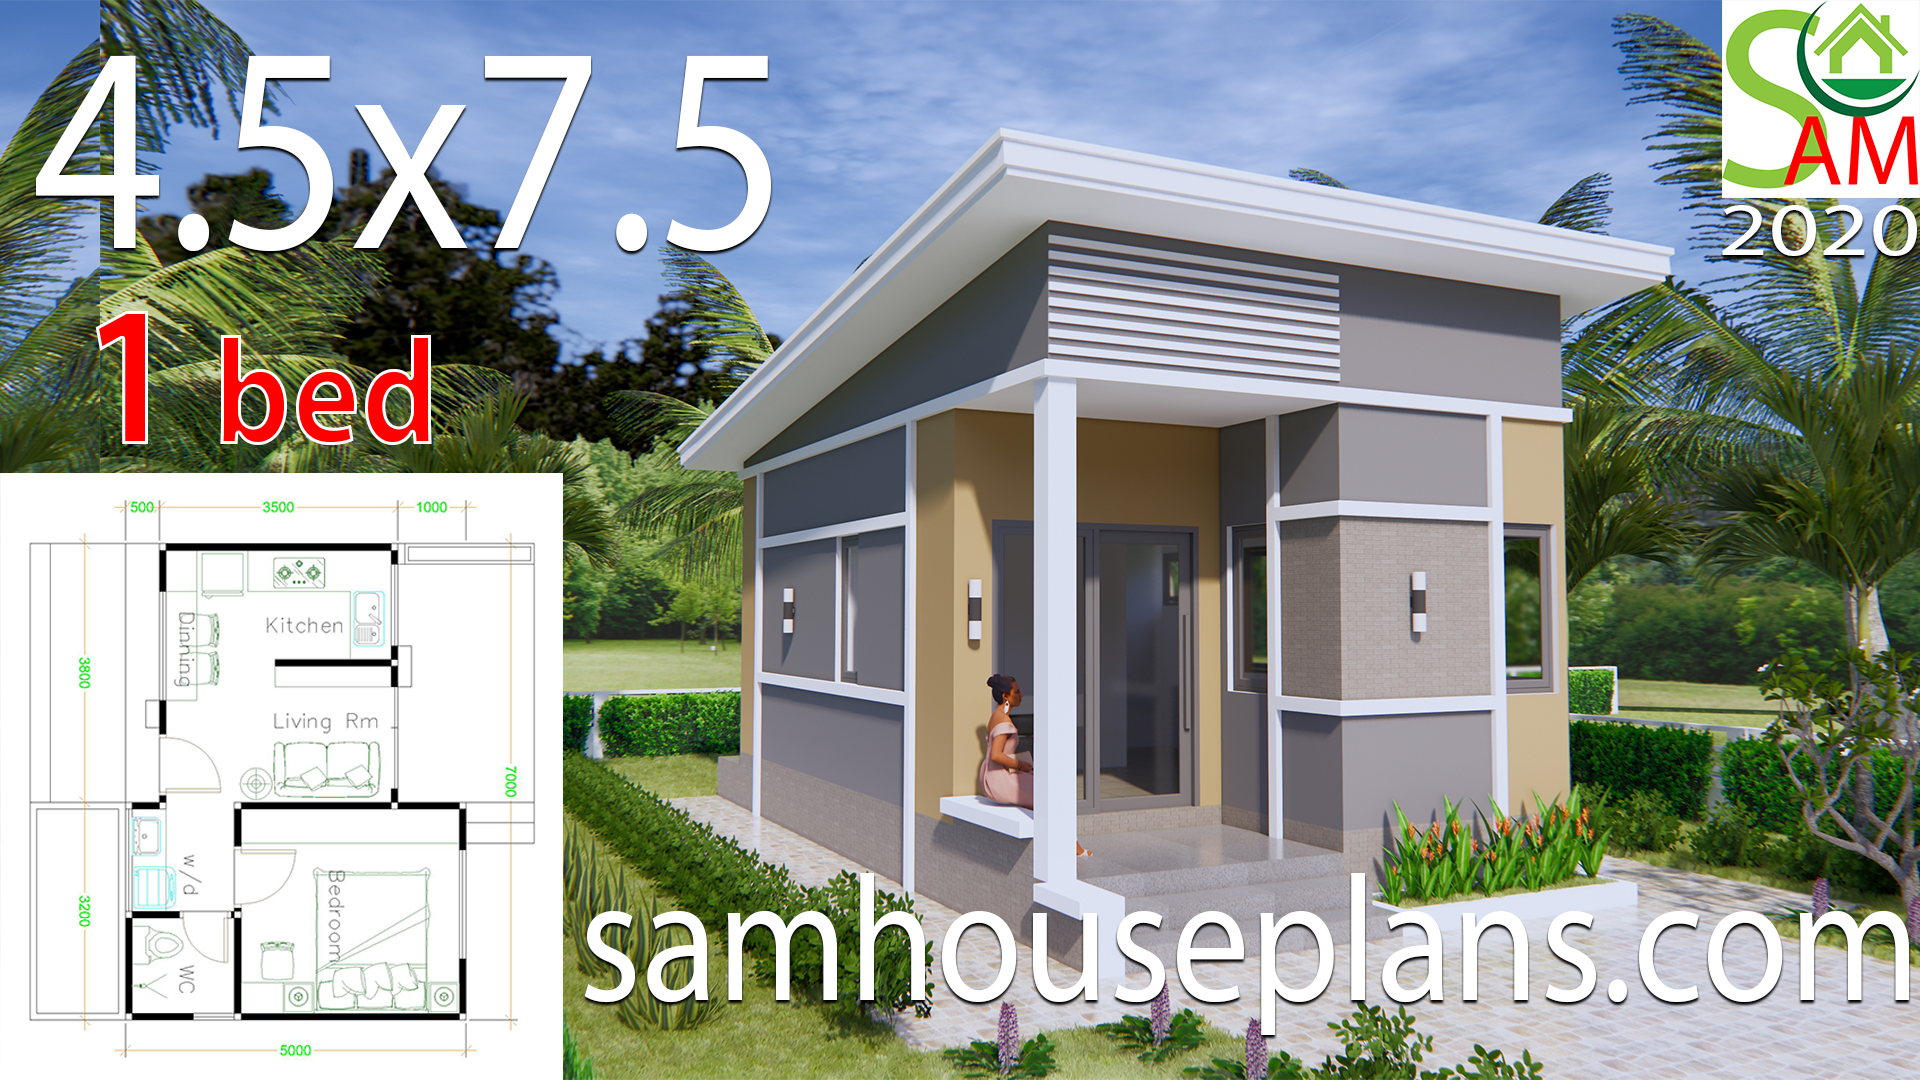 Small House Plans 4 5x7 5 With One Bedroom Shed Roof Samhouseplans